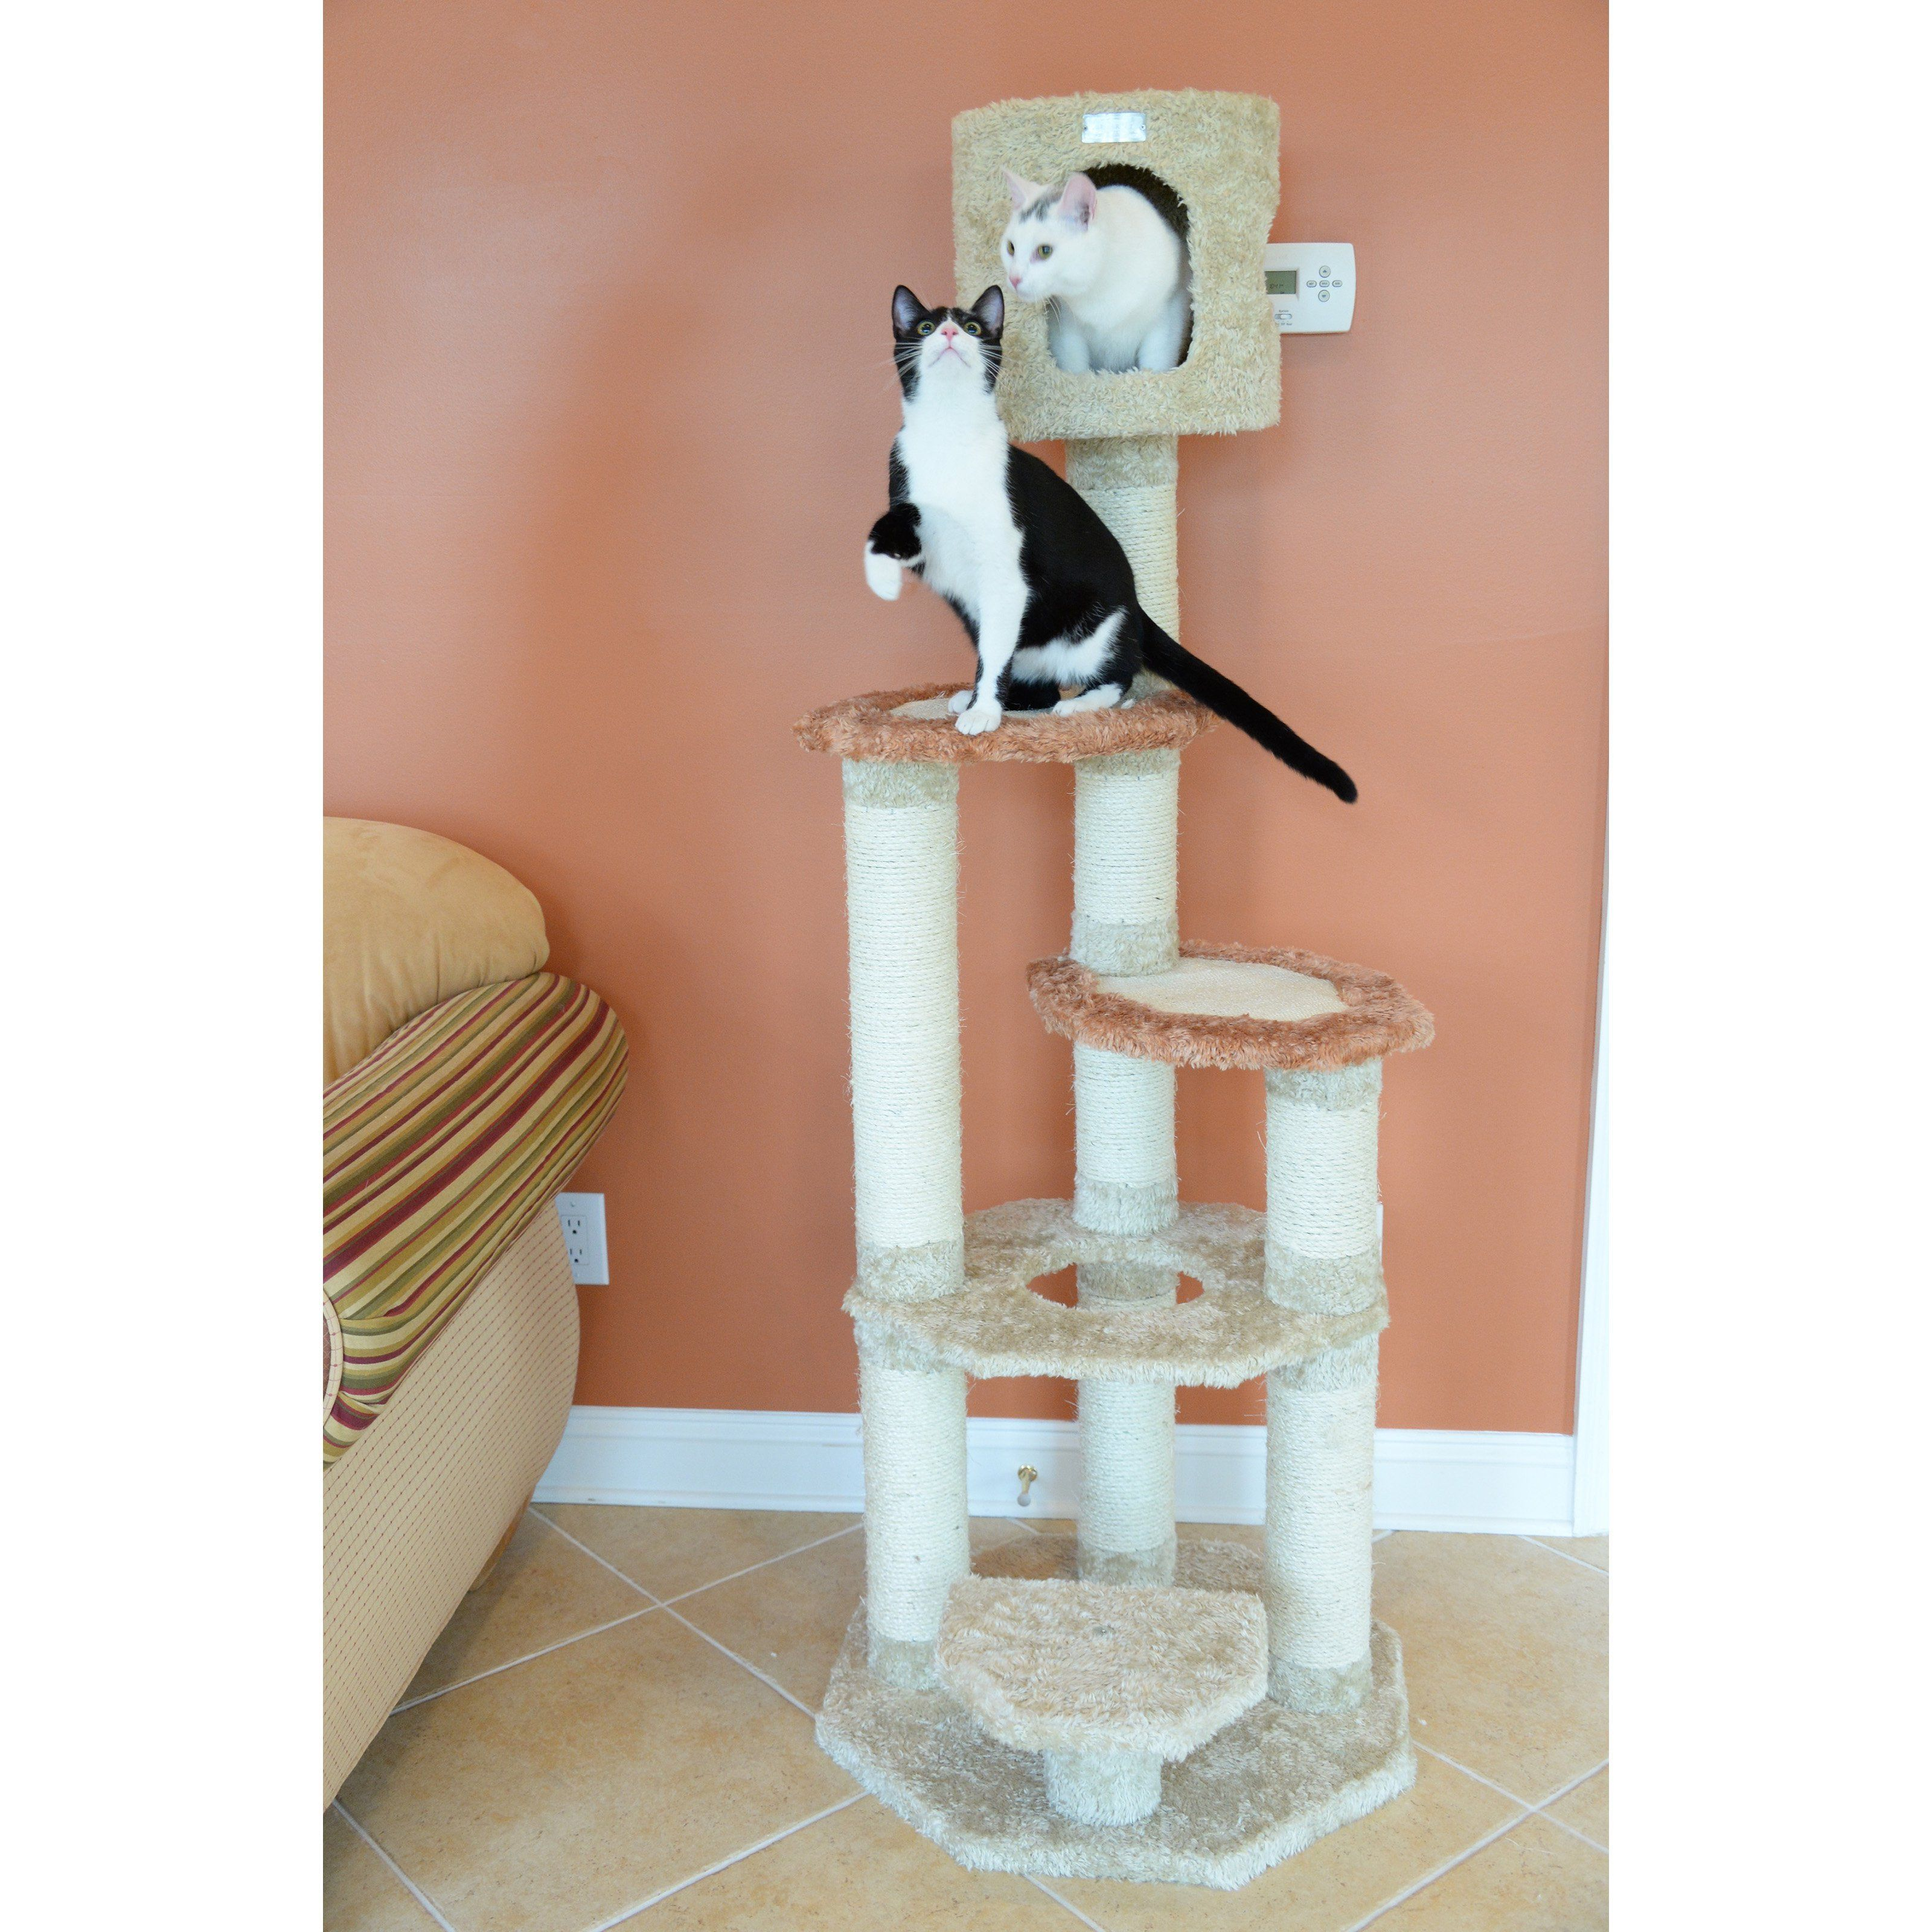 photo cats medium domestic picture frame sized animal illustration decorative life sit images furniture to decoration still cat european small en chair shorthair free